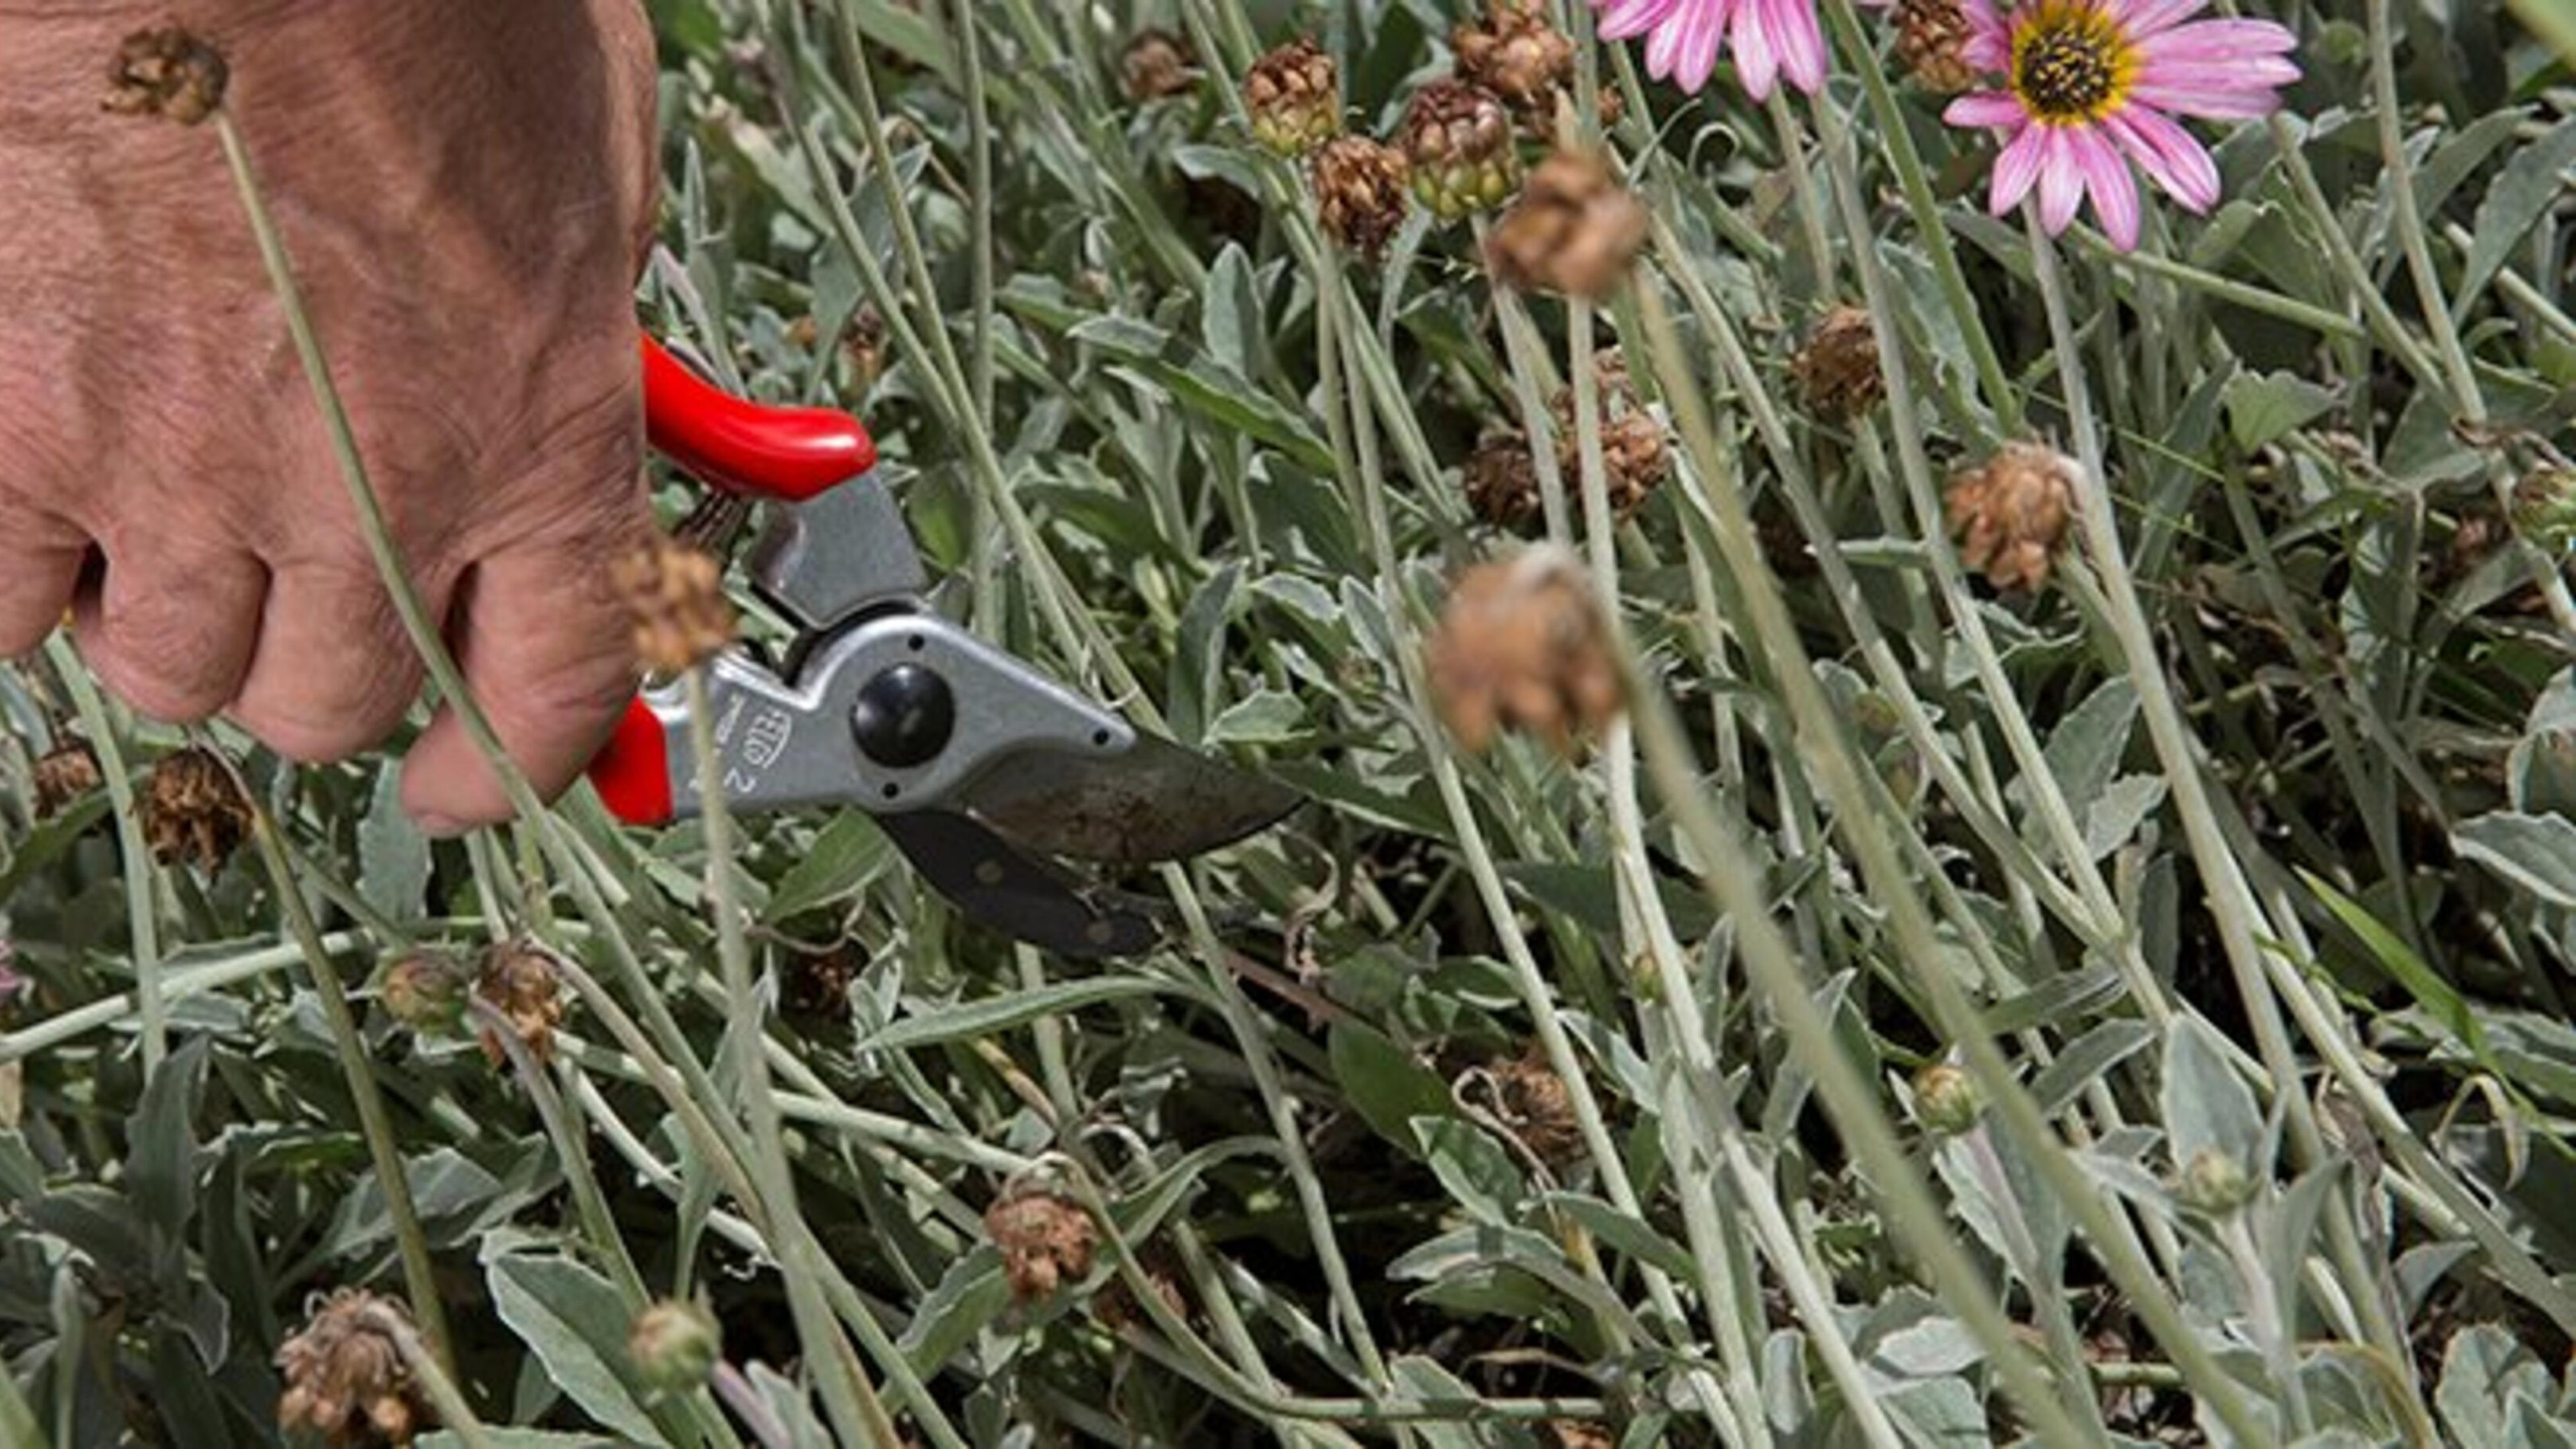 Person pruning plants.